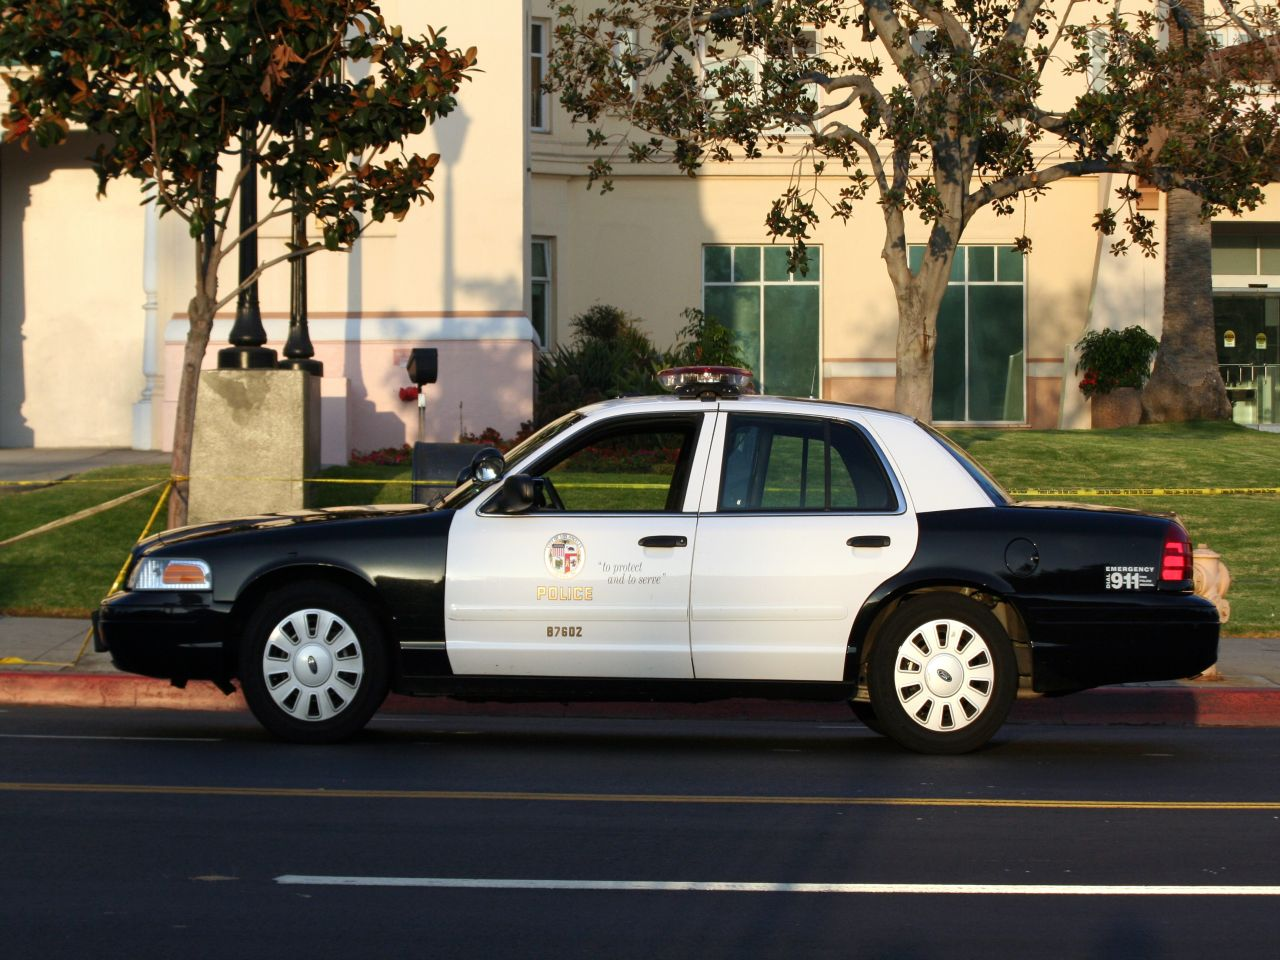 Color car los angeles - File Los Angeles Police Car Jpg